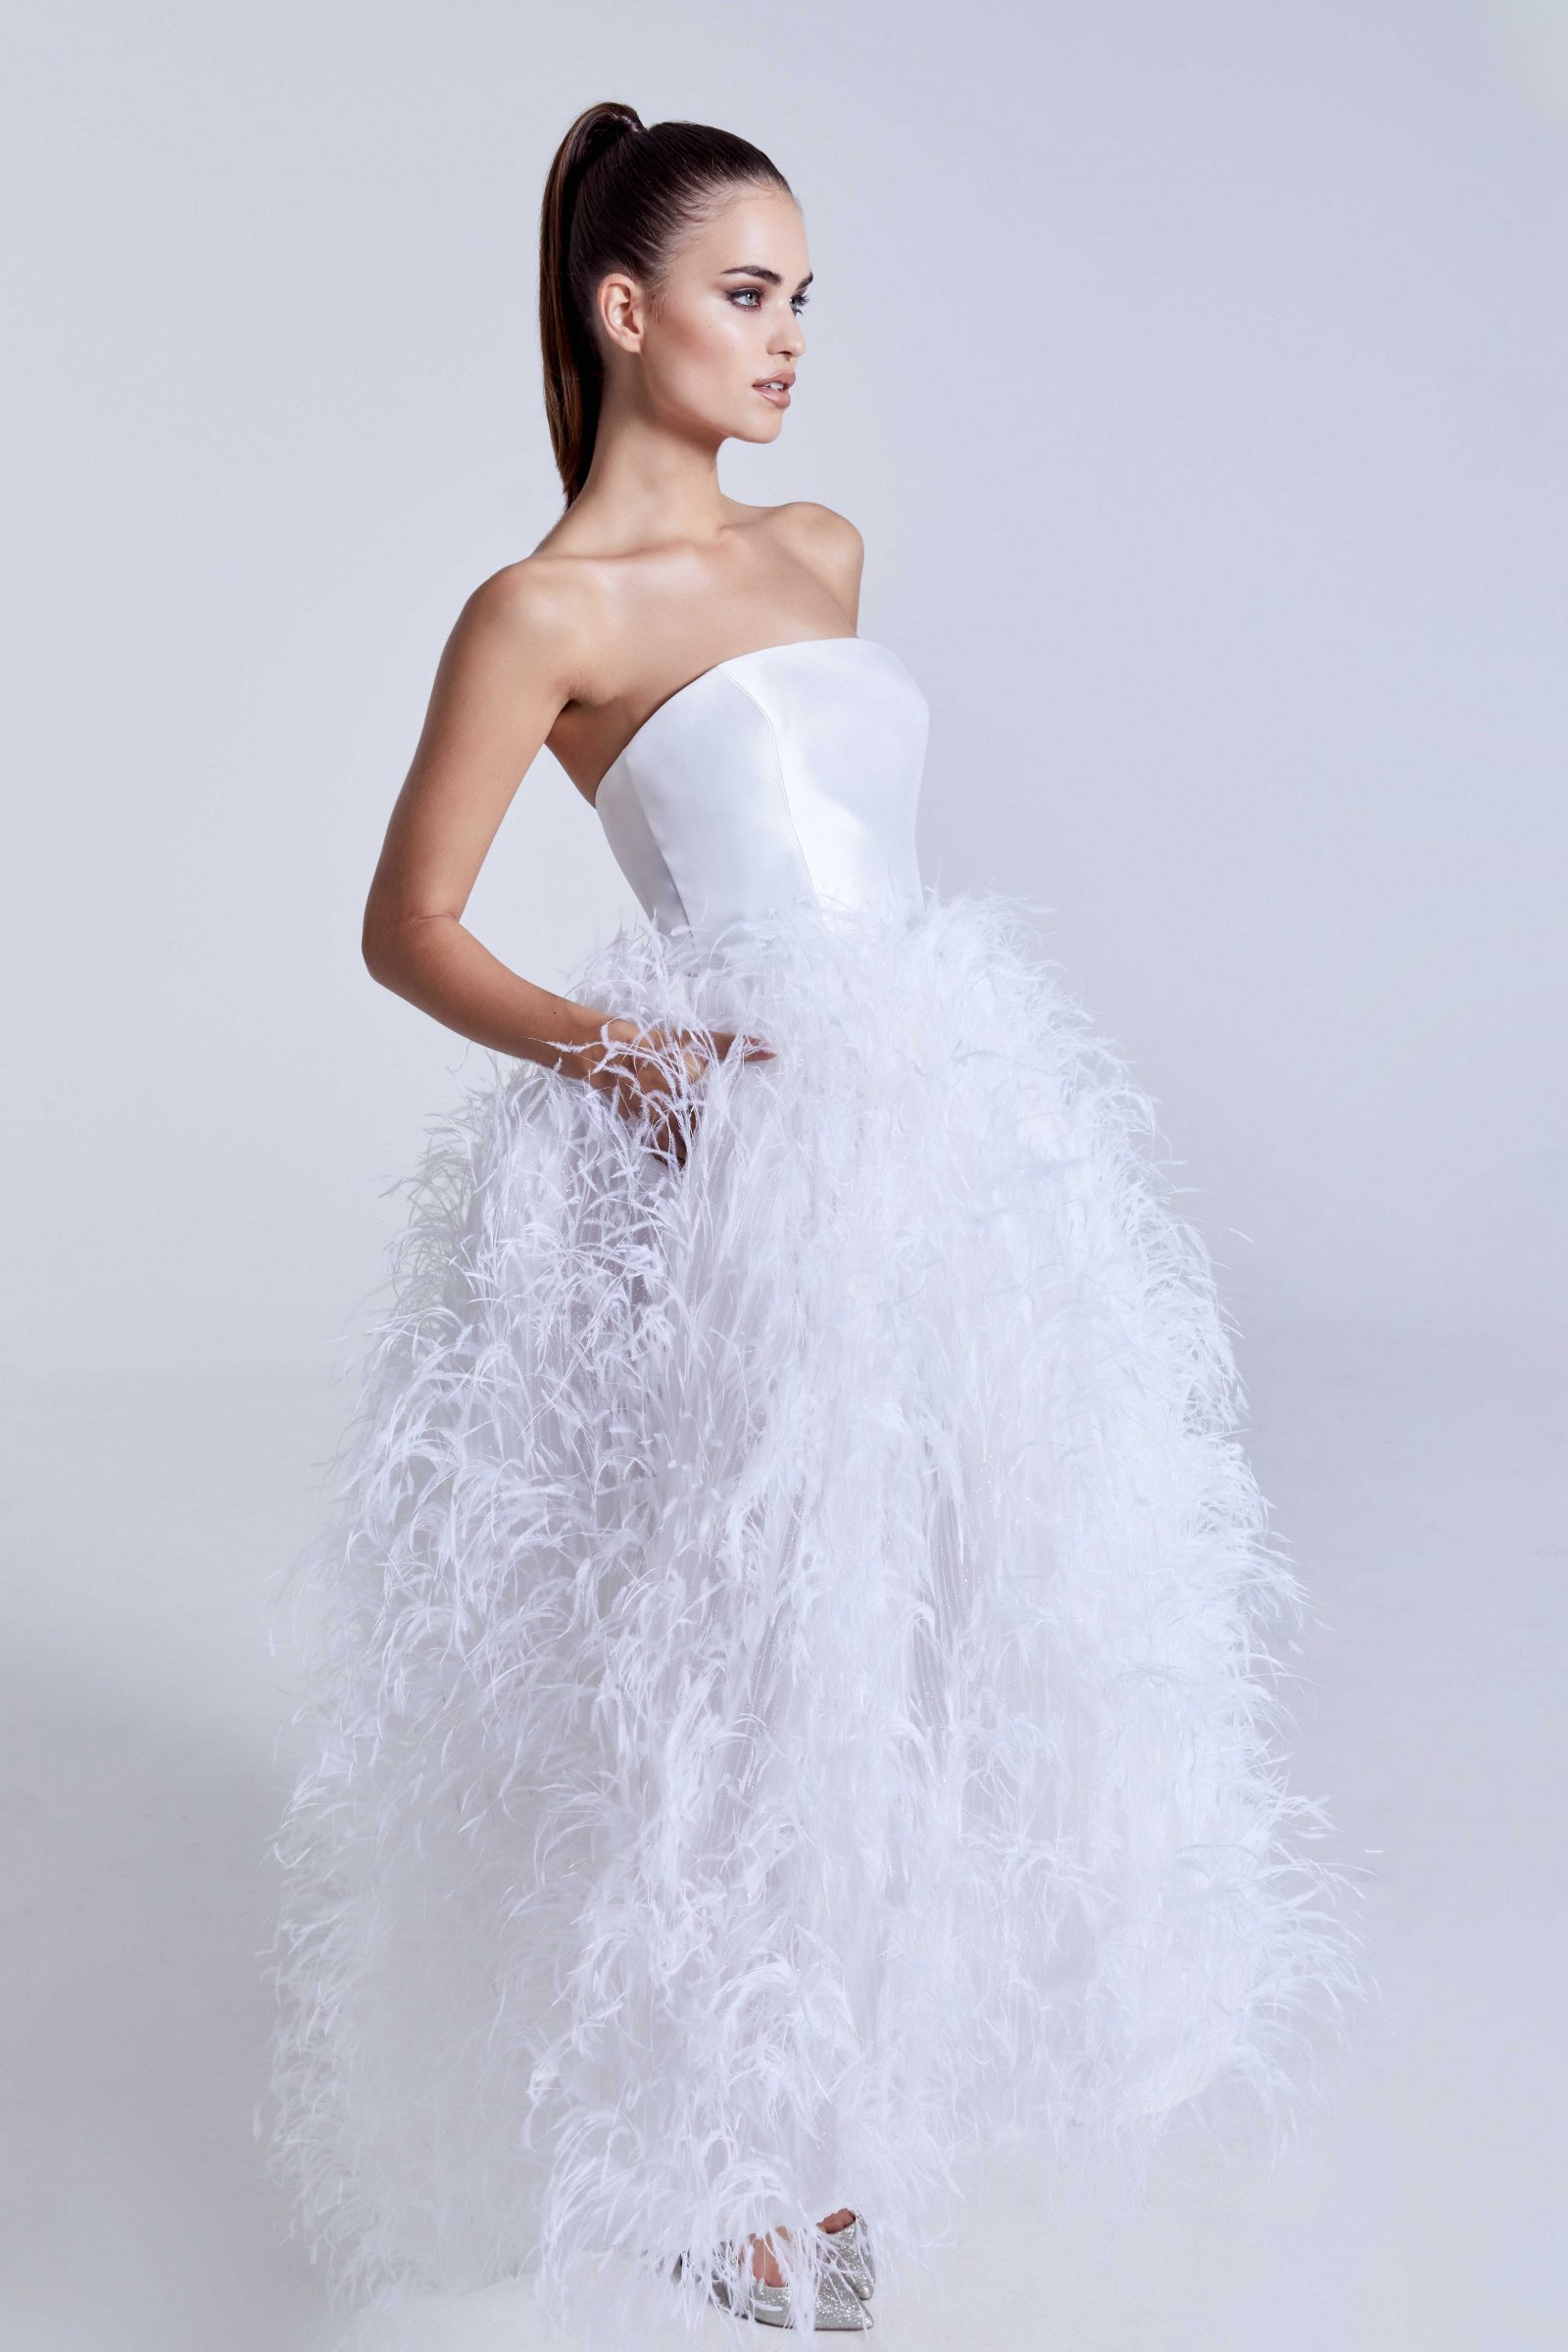 Simple strapless top bridal gown with feathered skirt